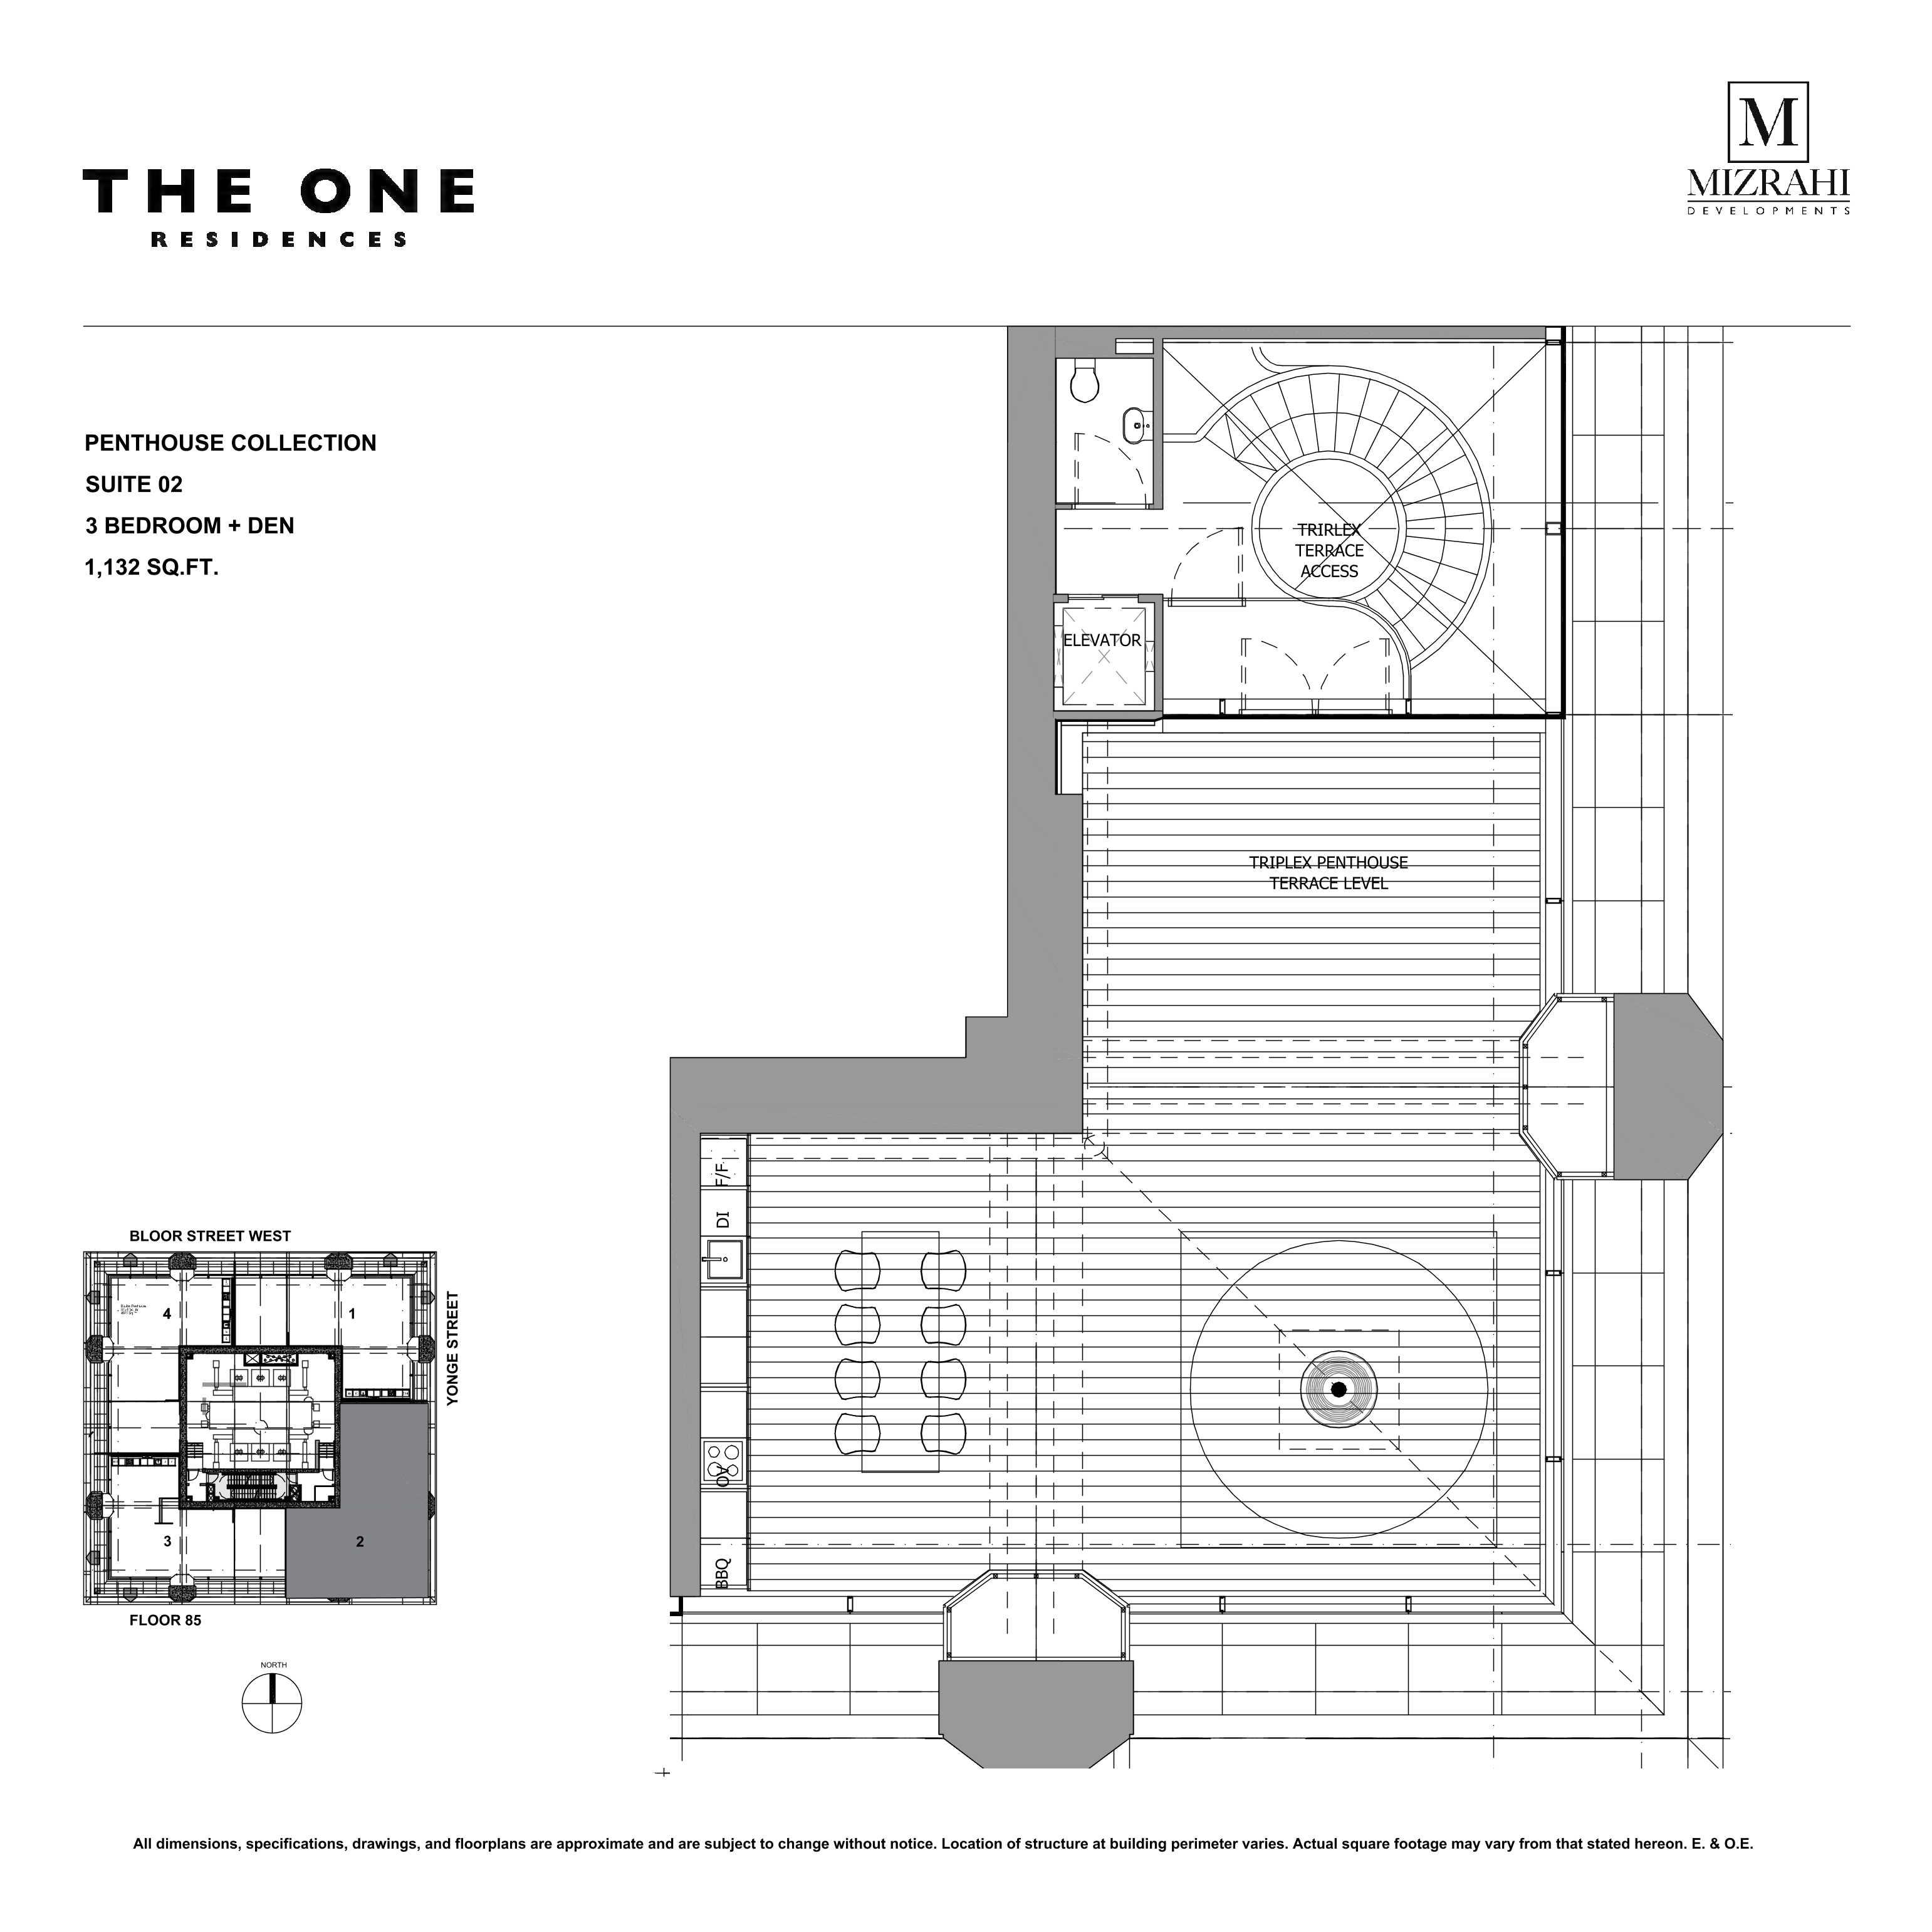 The One Bloor West | Pre-Construction | Toronto | Condosky Realty Floor Plans Penthouses In Toronto on schools in toronto, malls in toronto, castles in toronto, services in toronto, parking in toronto, condos in toronto, museums in toronto, gardens in toronto, mansions in toronto, units in toronto, town houses in toronto, luxury homes in toronto, real estate in toronto, buildings in toronto, cottages in toronto, apartments in toronto, architecture in toronto, lofts in toronto, restaurants in toronto, hotels in toronto,